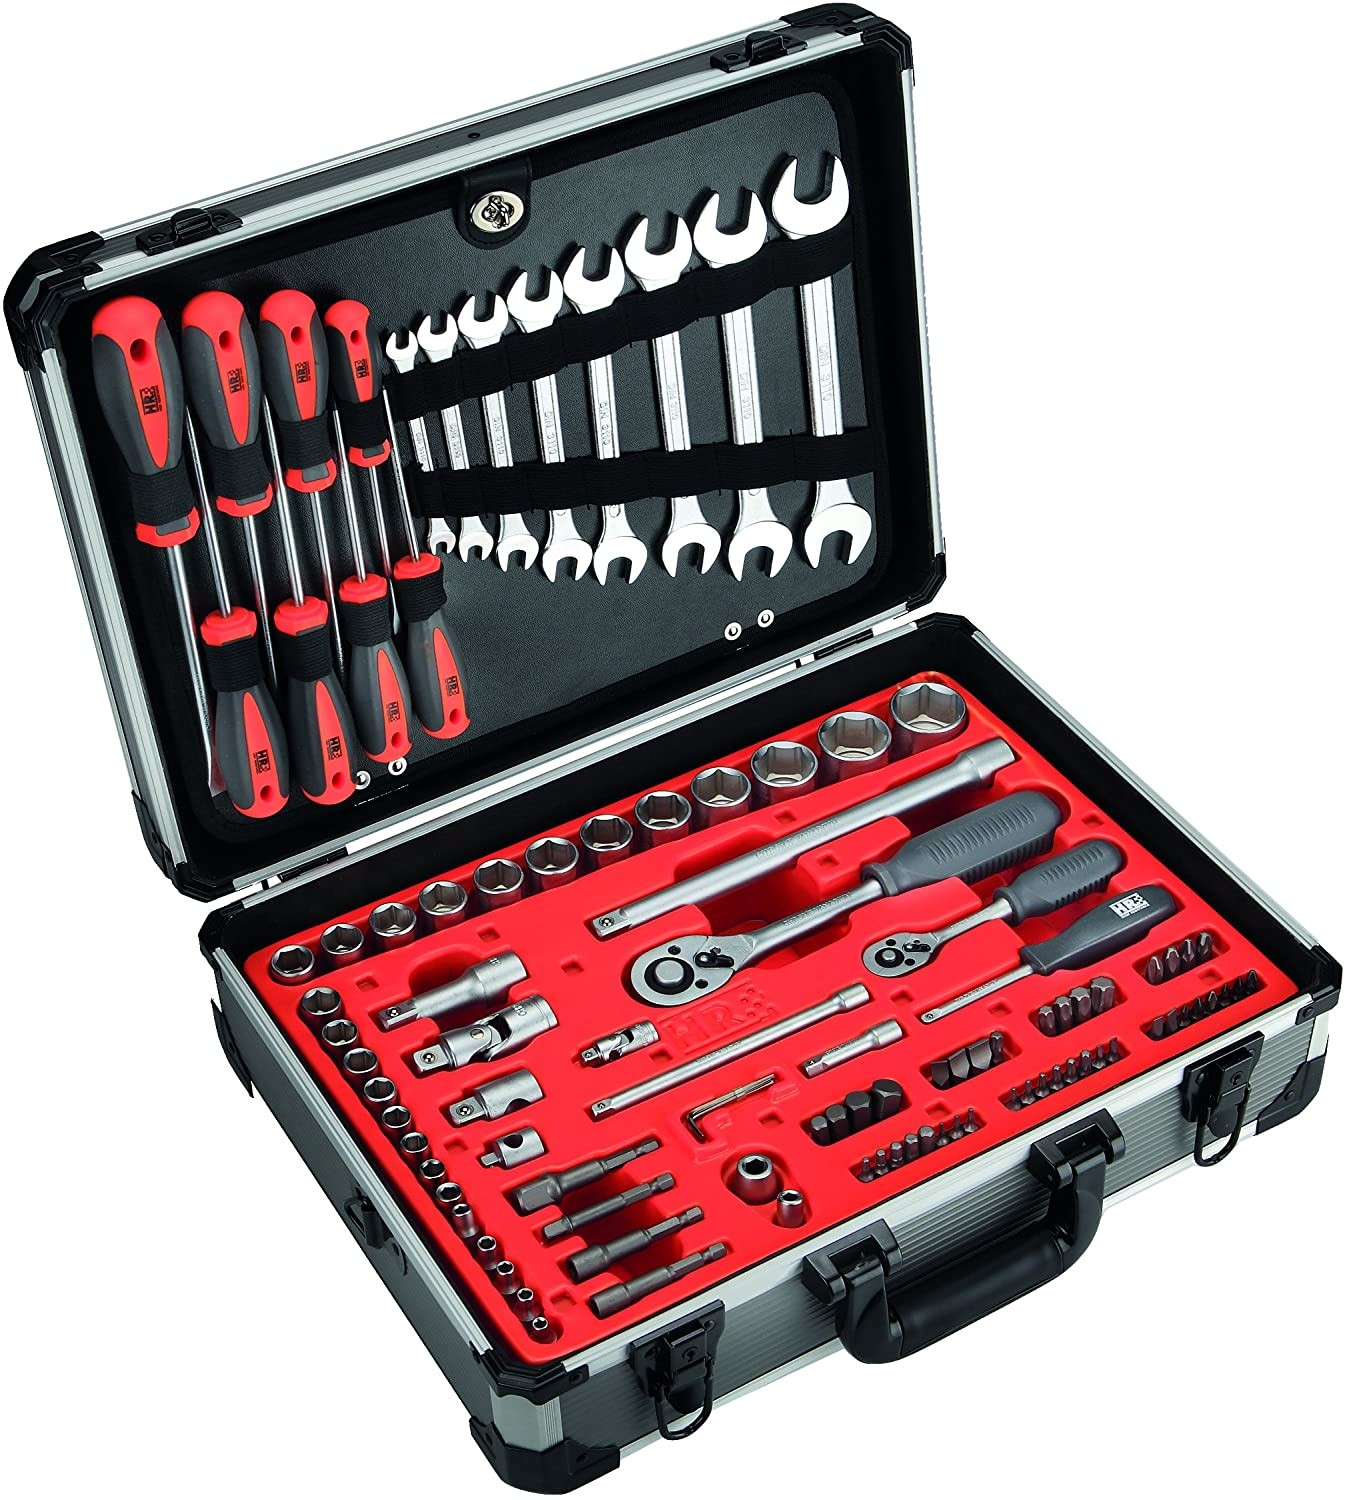 Complete Mechanical Tool box With 120 Tools in Aluminium Case , 170822